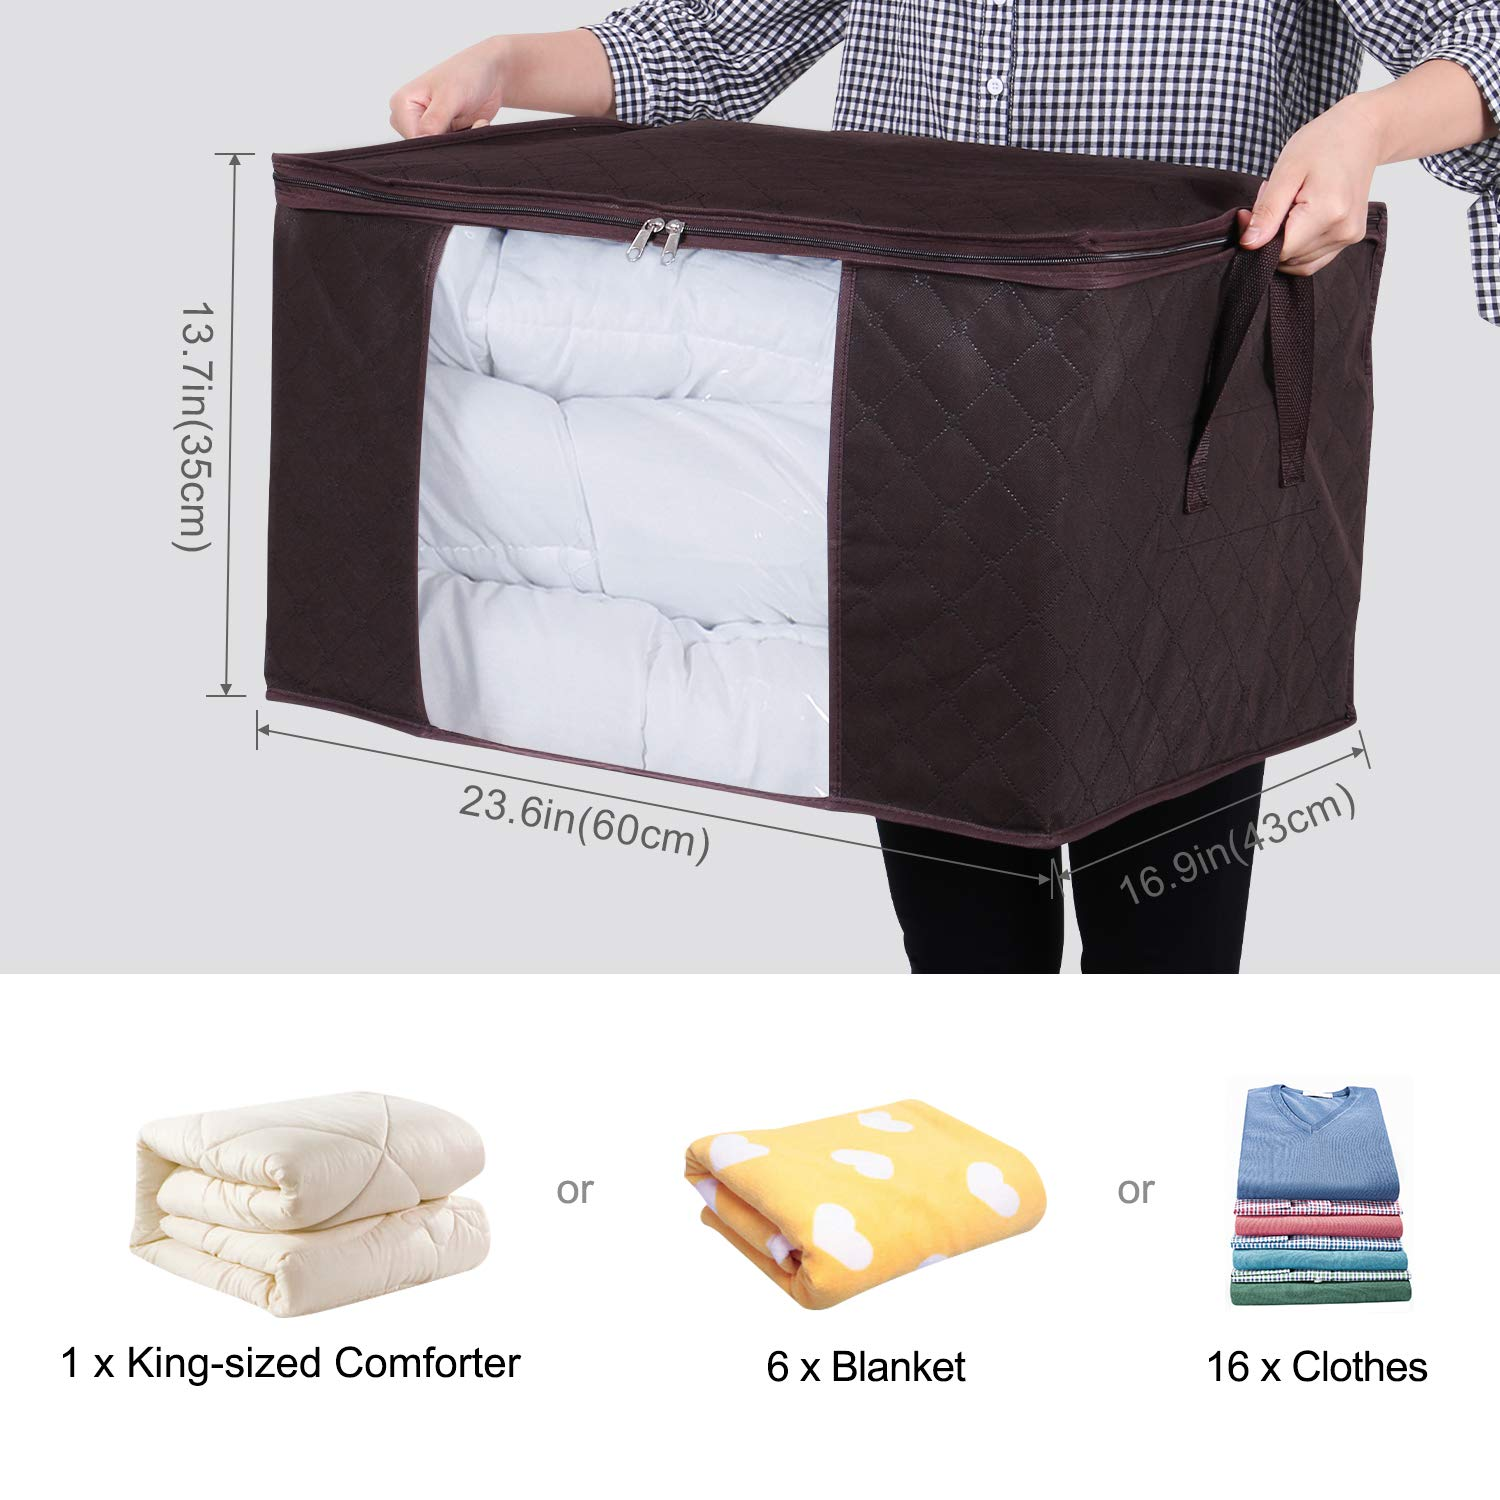 3 Pack Bedding Foldable with Sturdy Zipper Clear Window Lifewit Large Capacity Clothes Storage Bag Organizer with Reinforced Handle Thick Fabric for Comforters Beige Blankets 90L